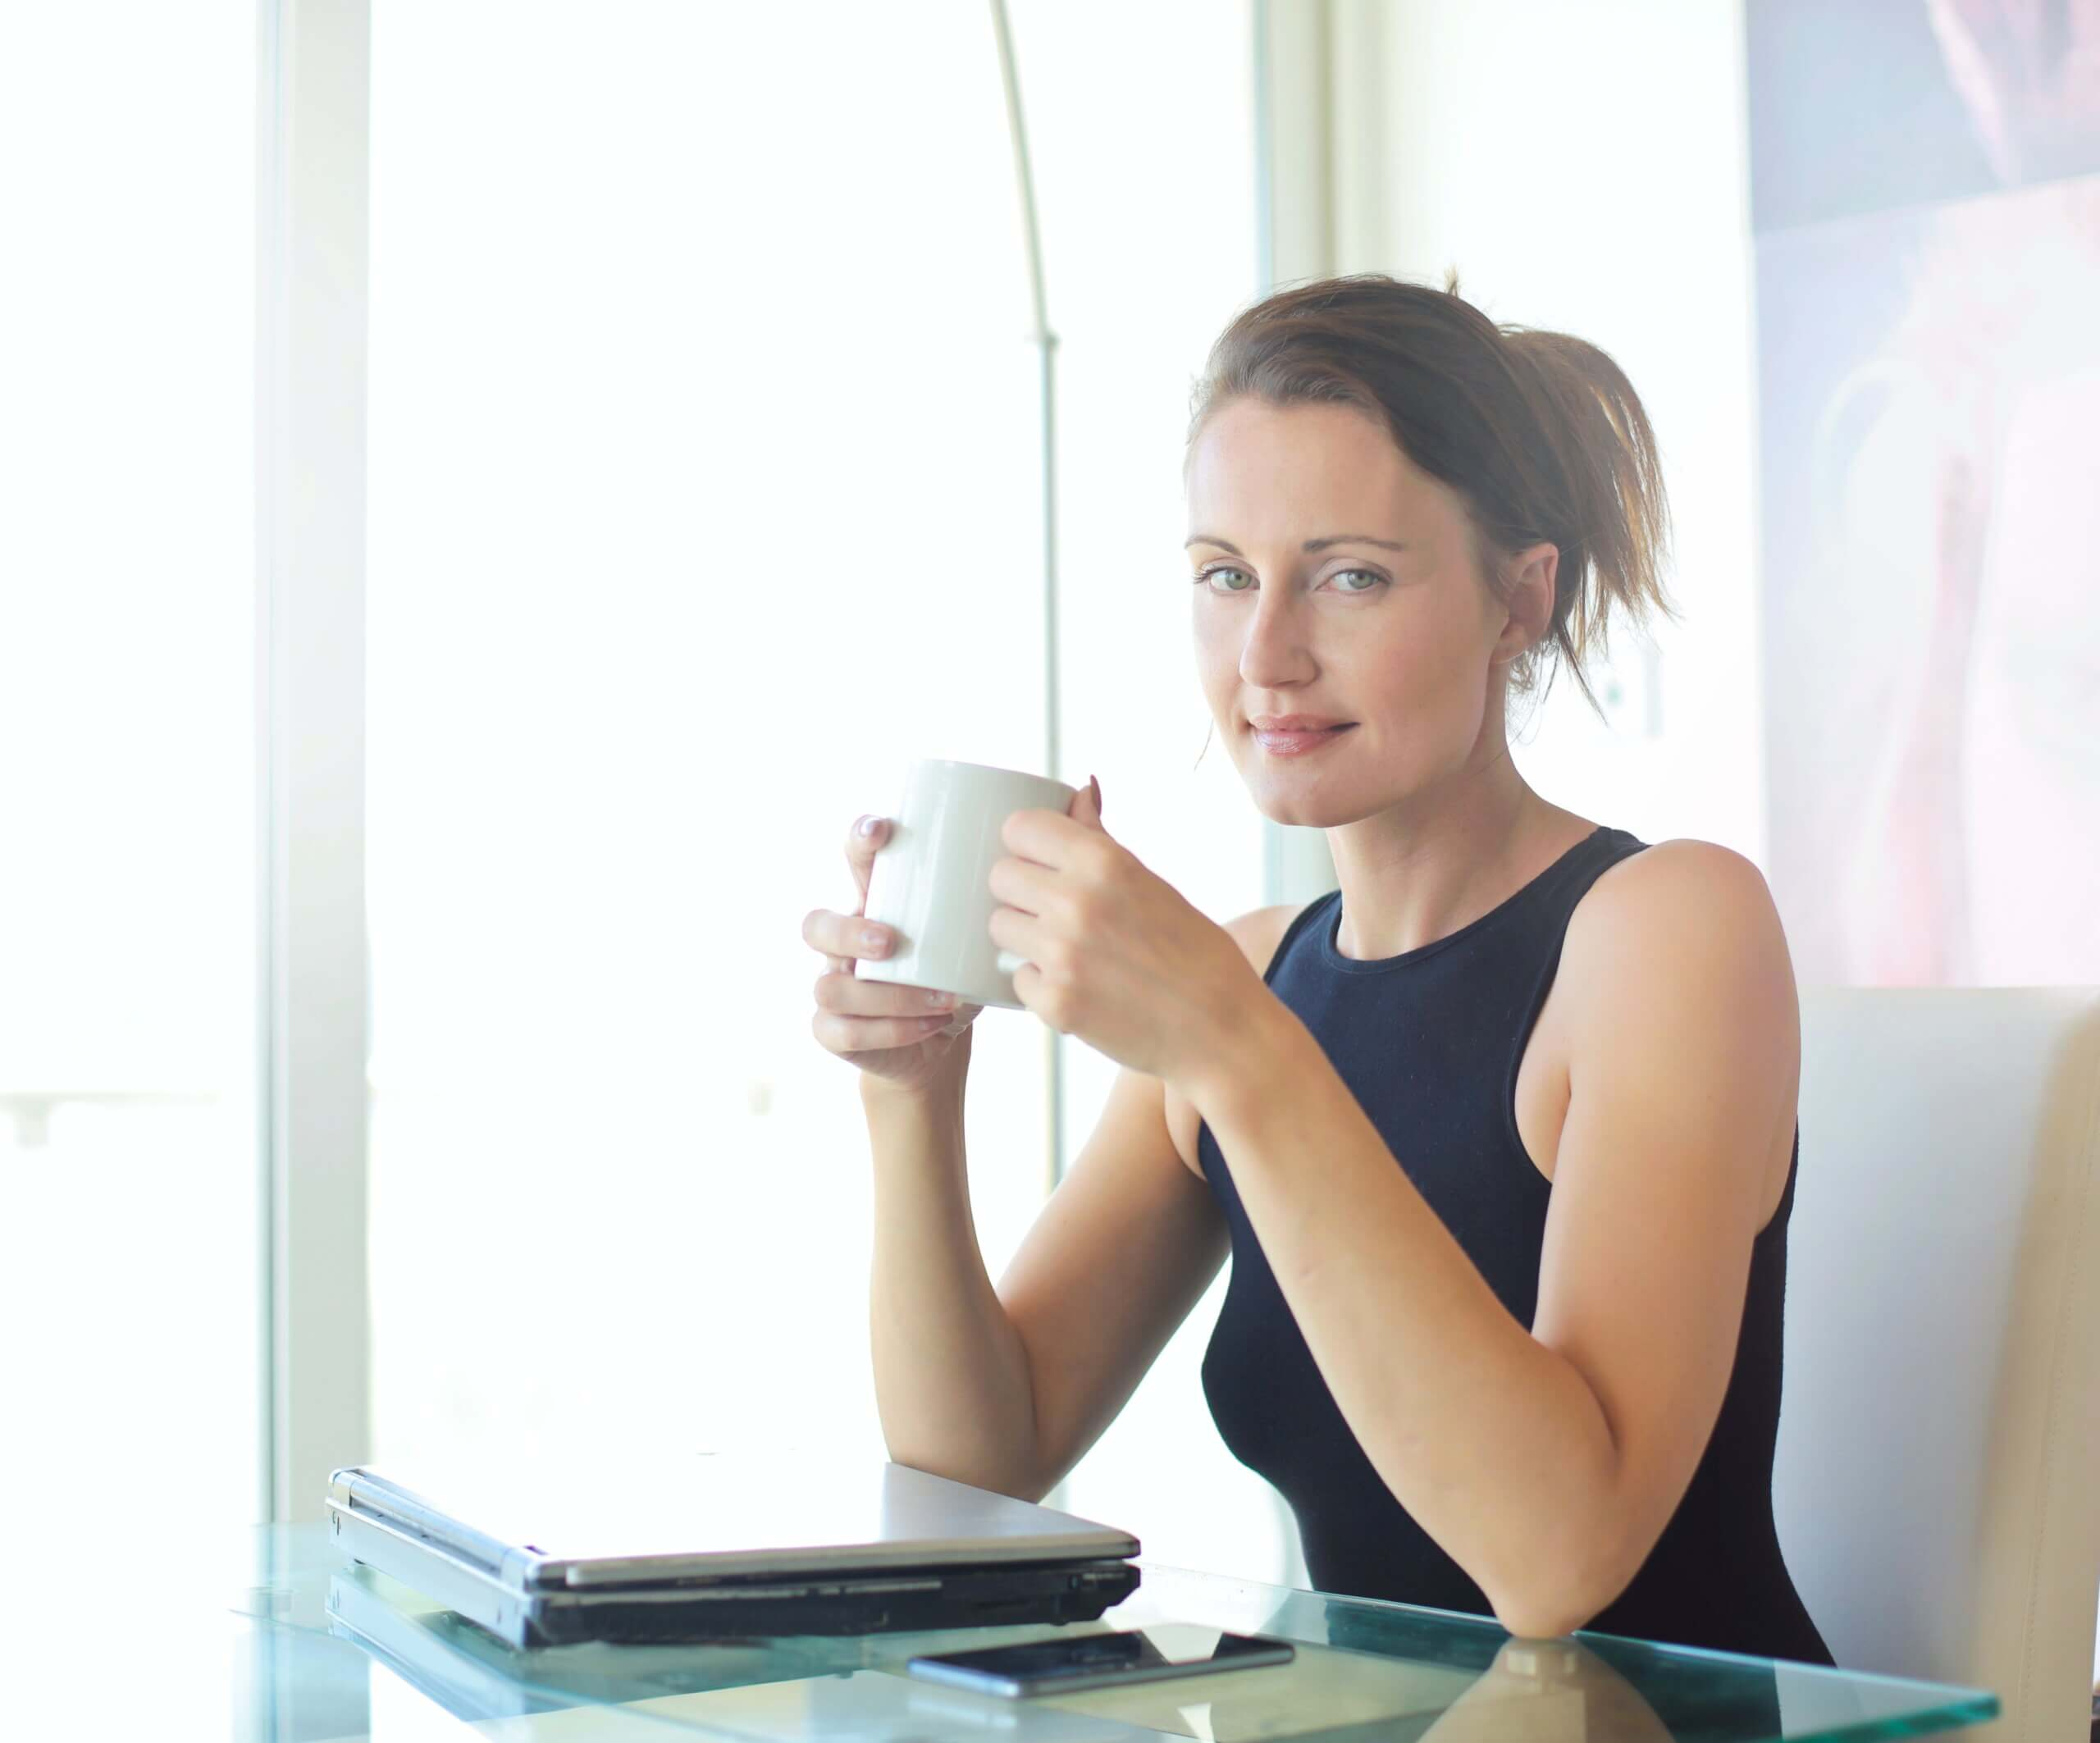 Exercises for woman over 50l seated woman with coffee cup